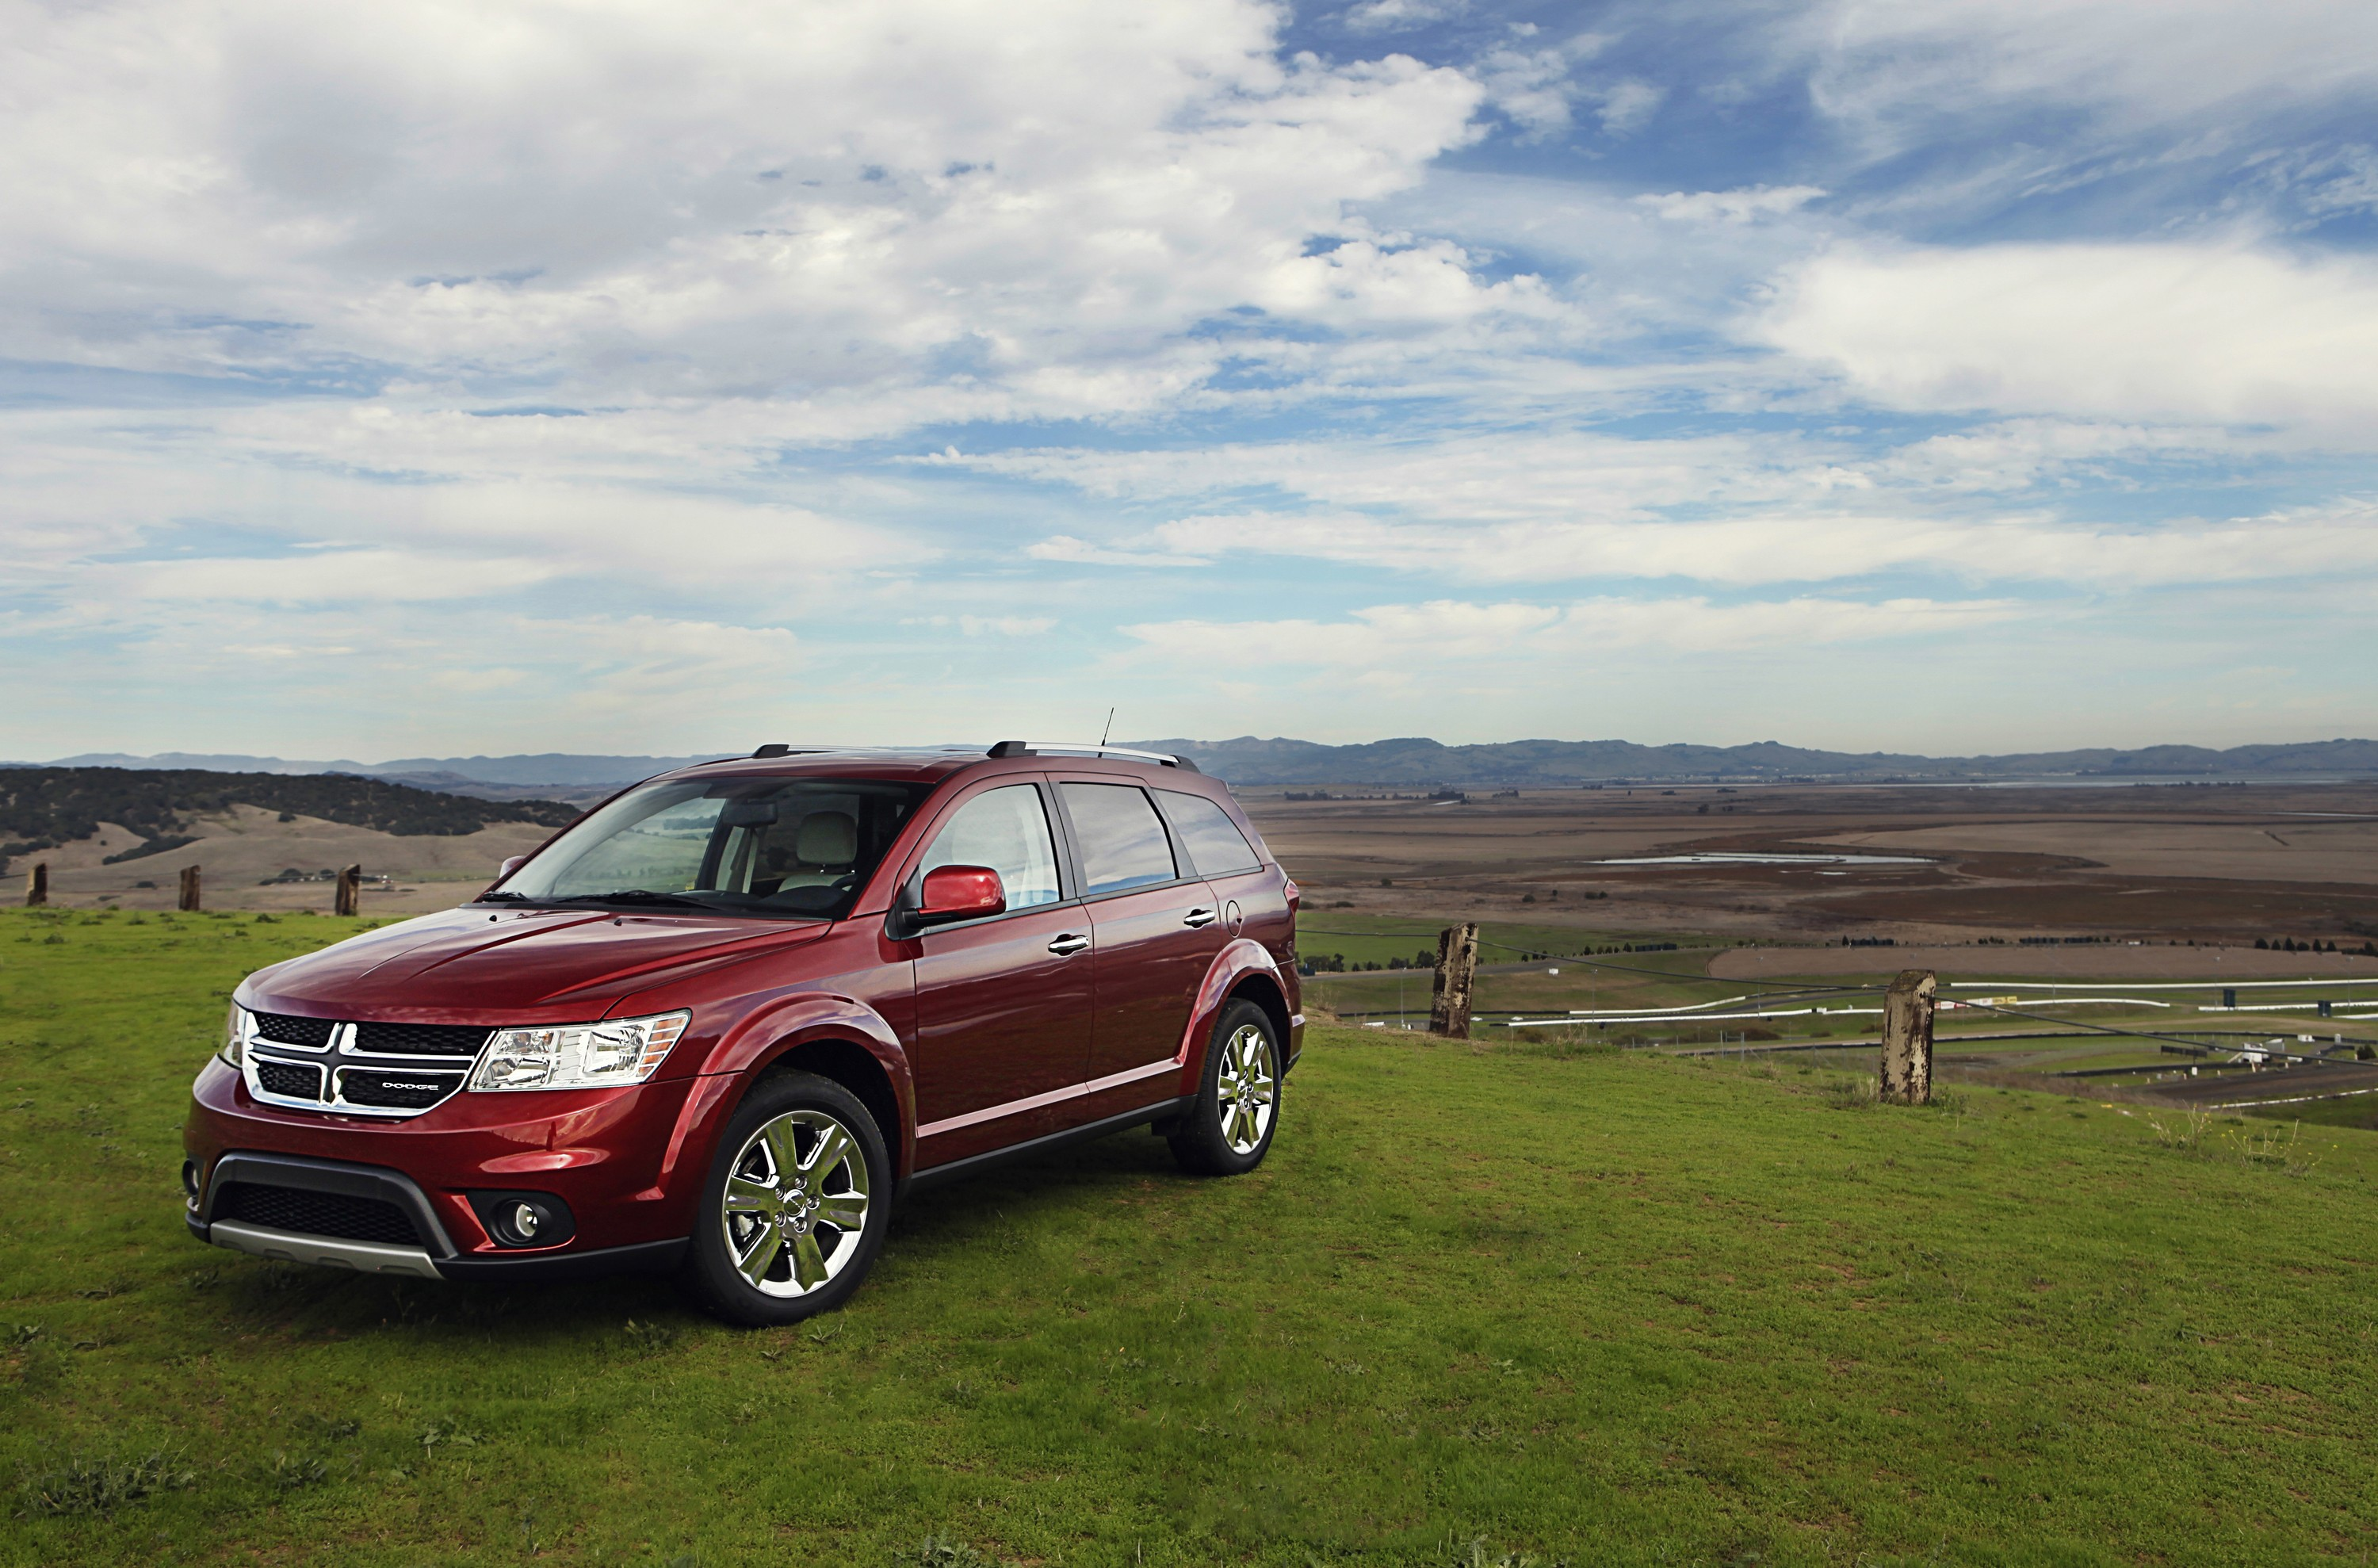 Should You Buy a Used Dodge Journey